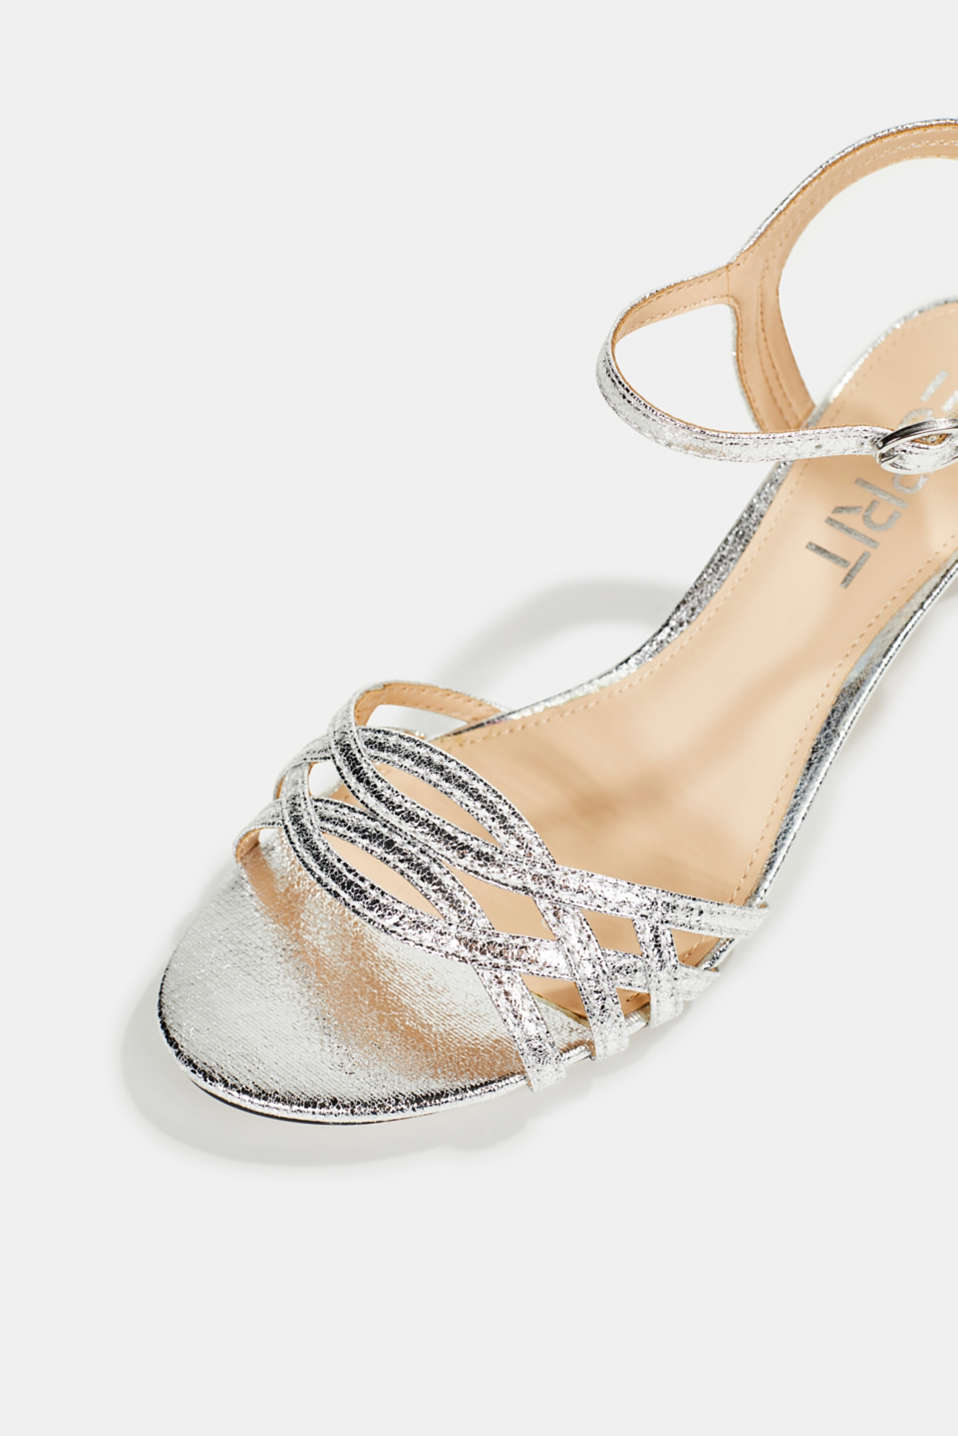 Sandals with straps in a braided look, SILVER, detail image number 4